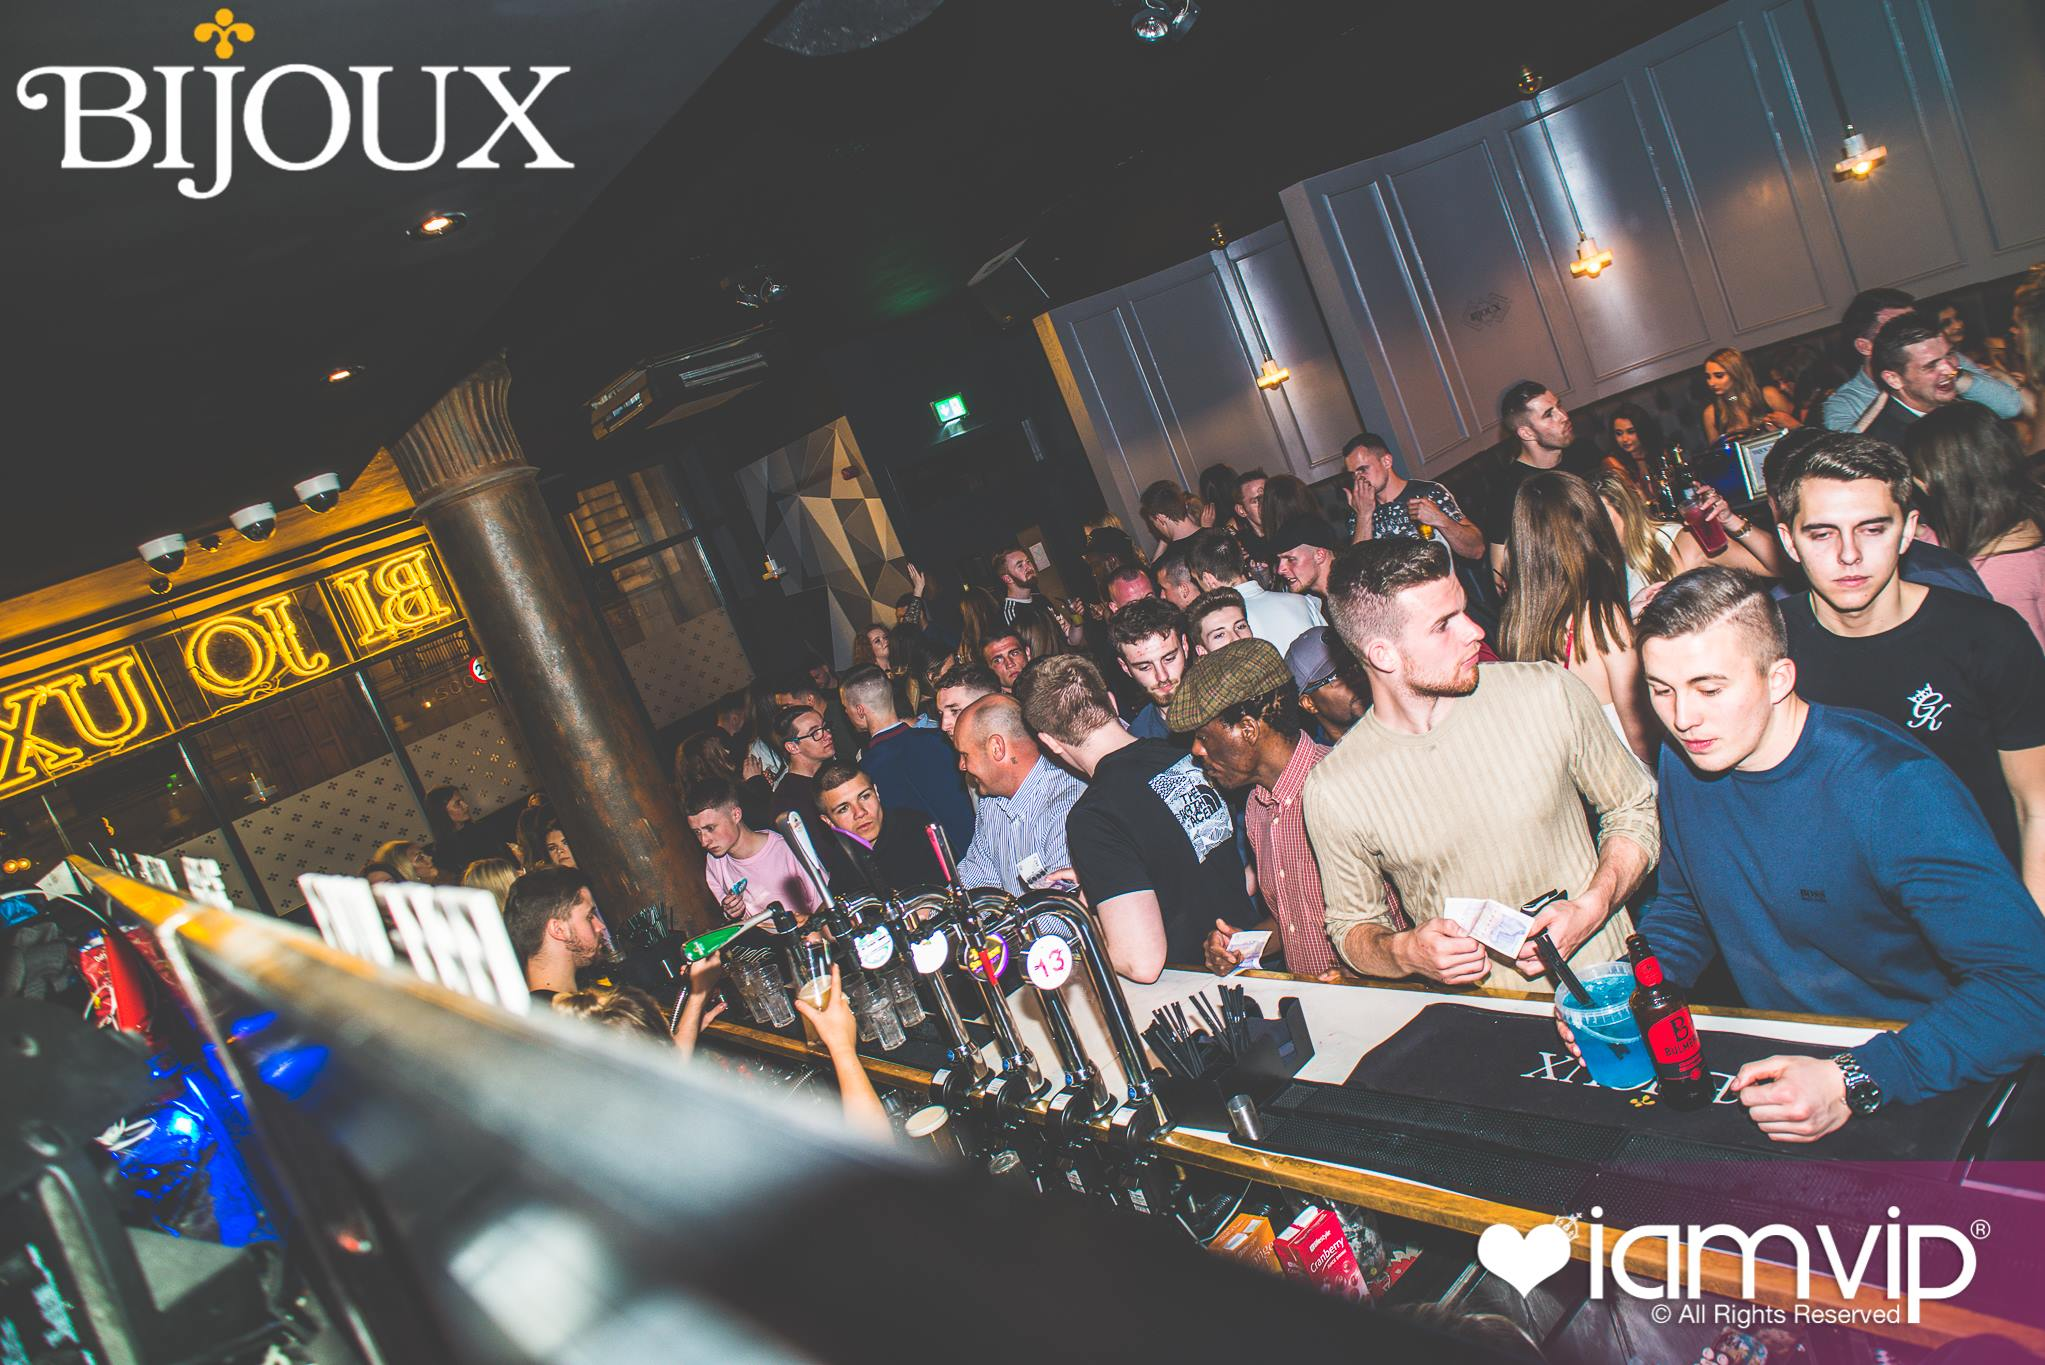 Bijoux Bar Review, featuring an image of people at the bar in Bijoux